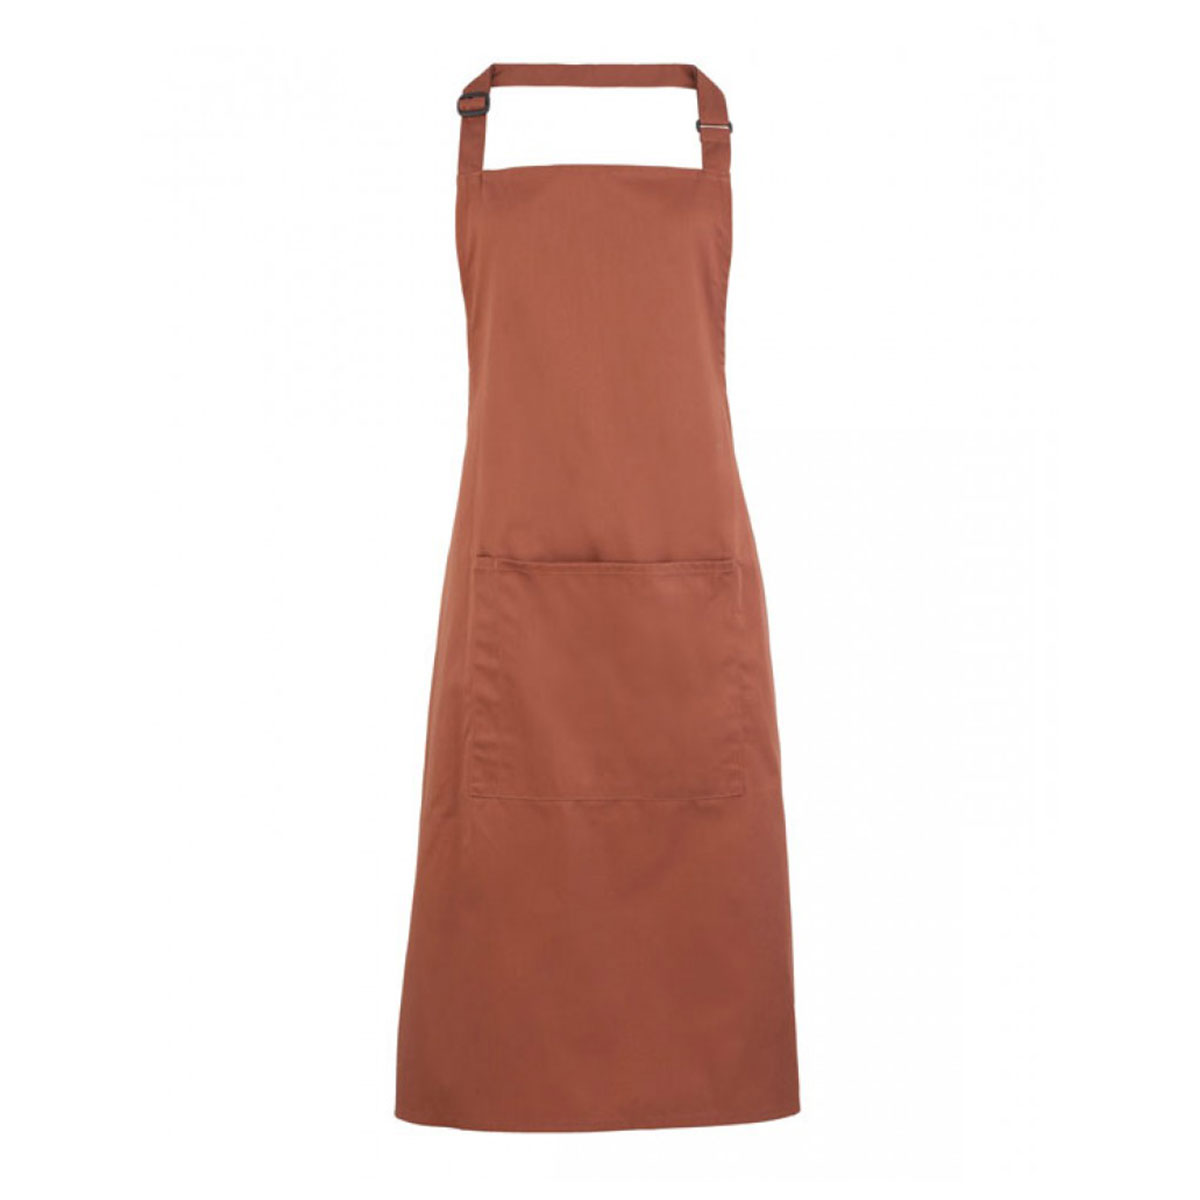 Colours Bib Apron with Pocket - pr154-chestnut